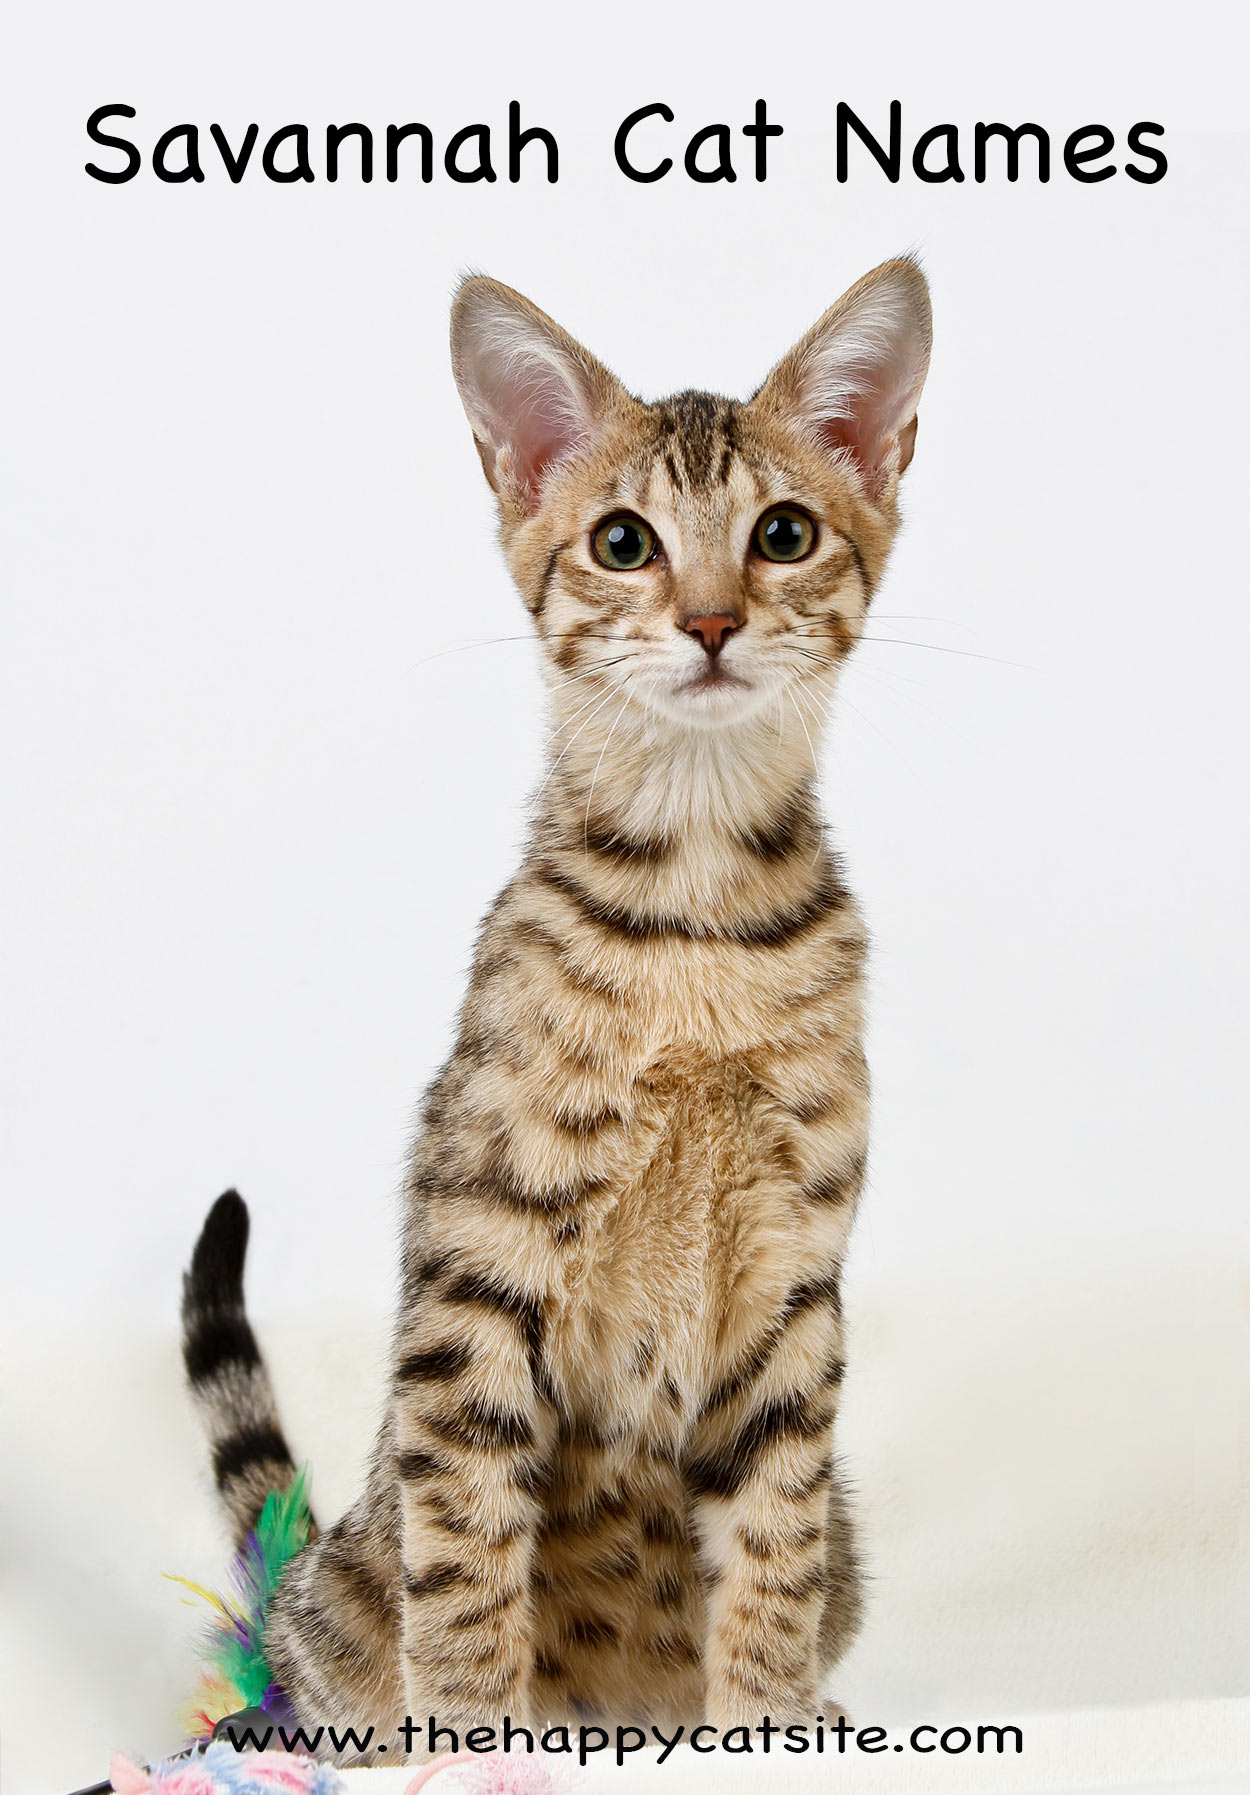 savannah cat names